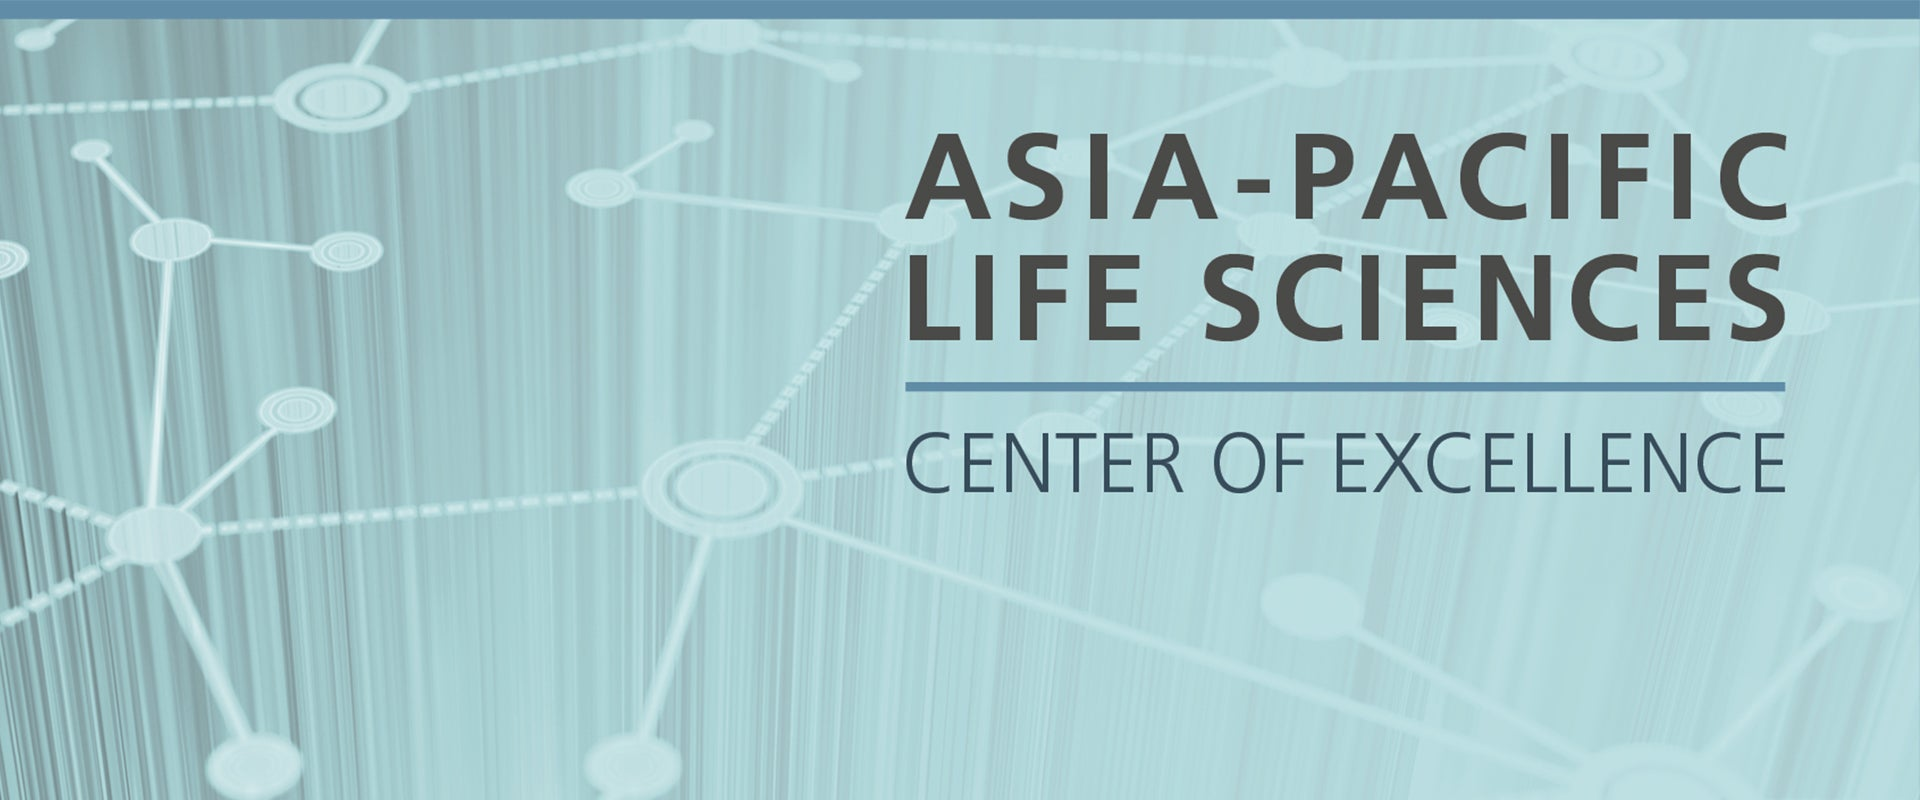 Asia-Pac Life Sciences Centre of Excellence